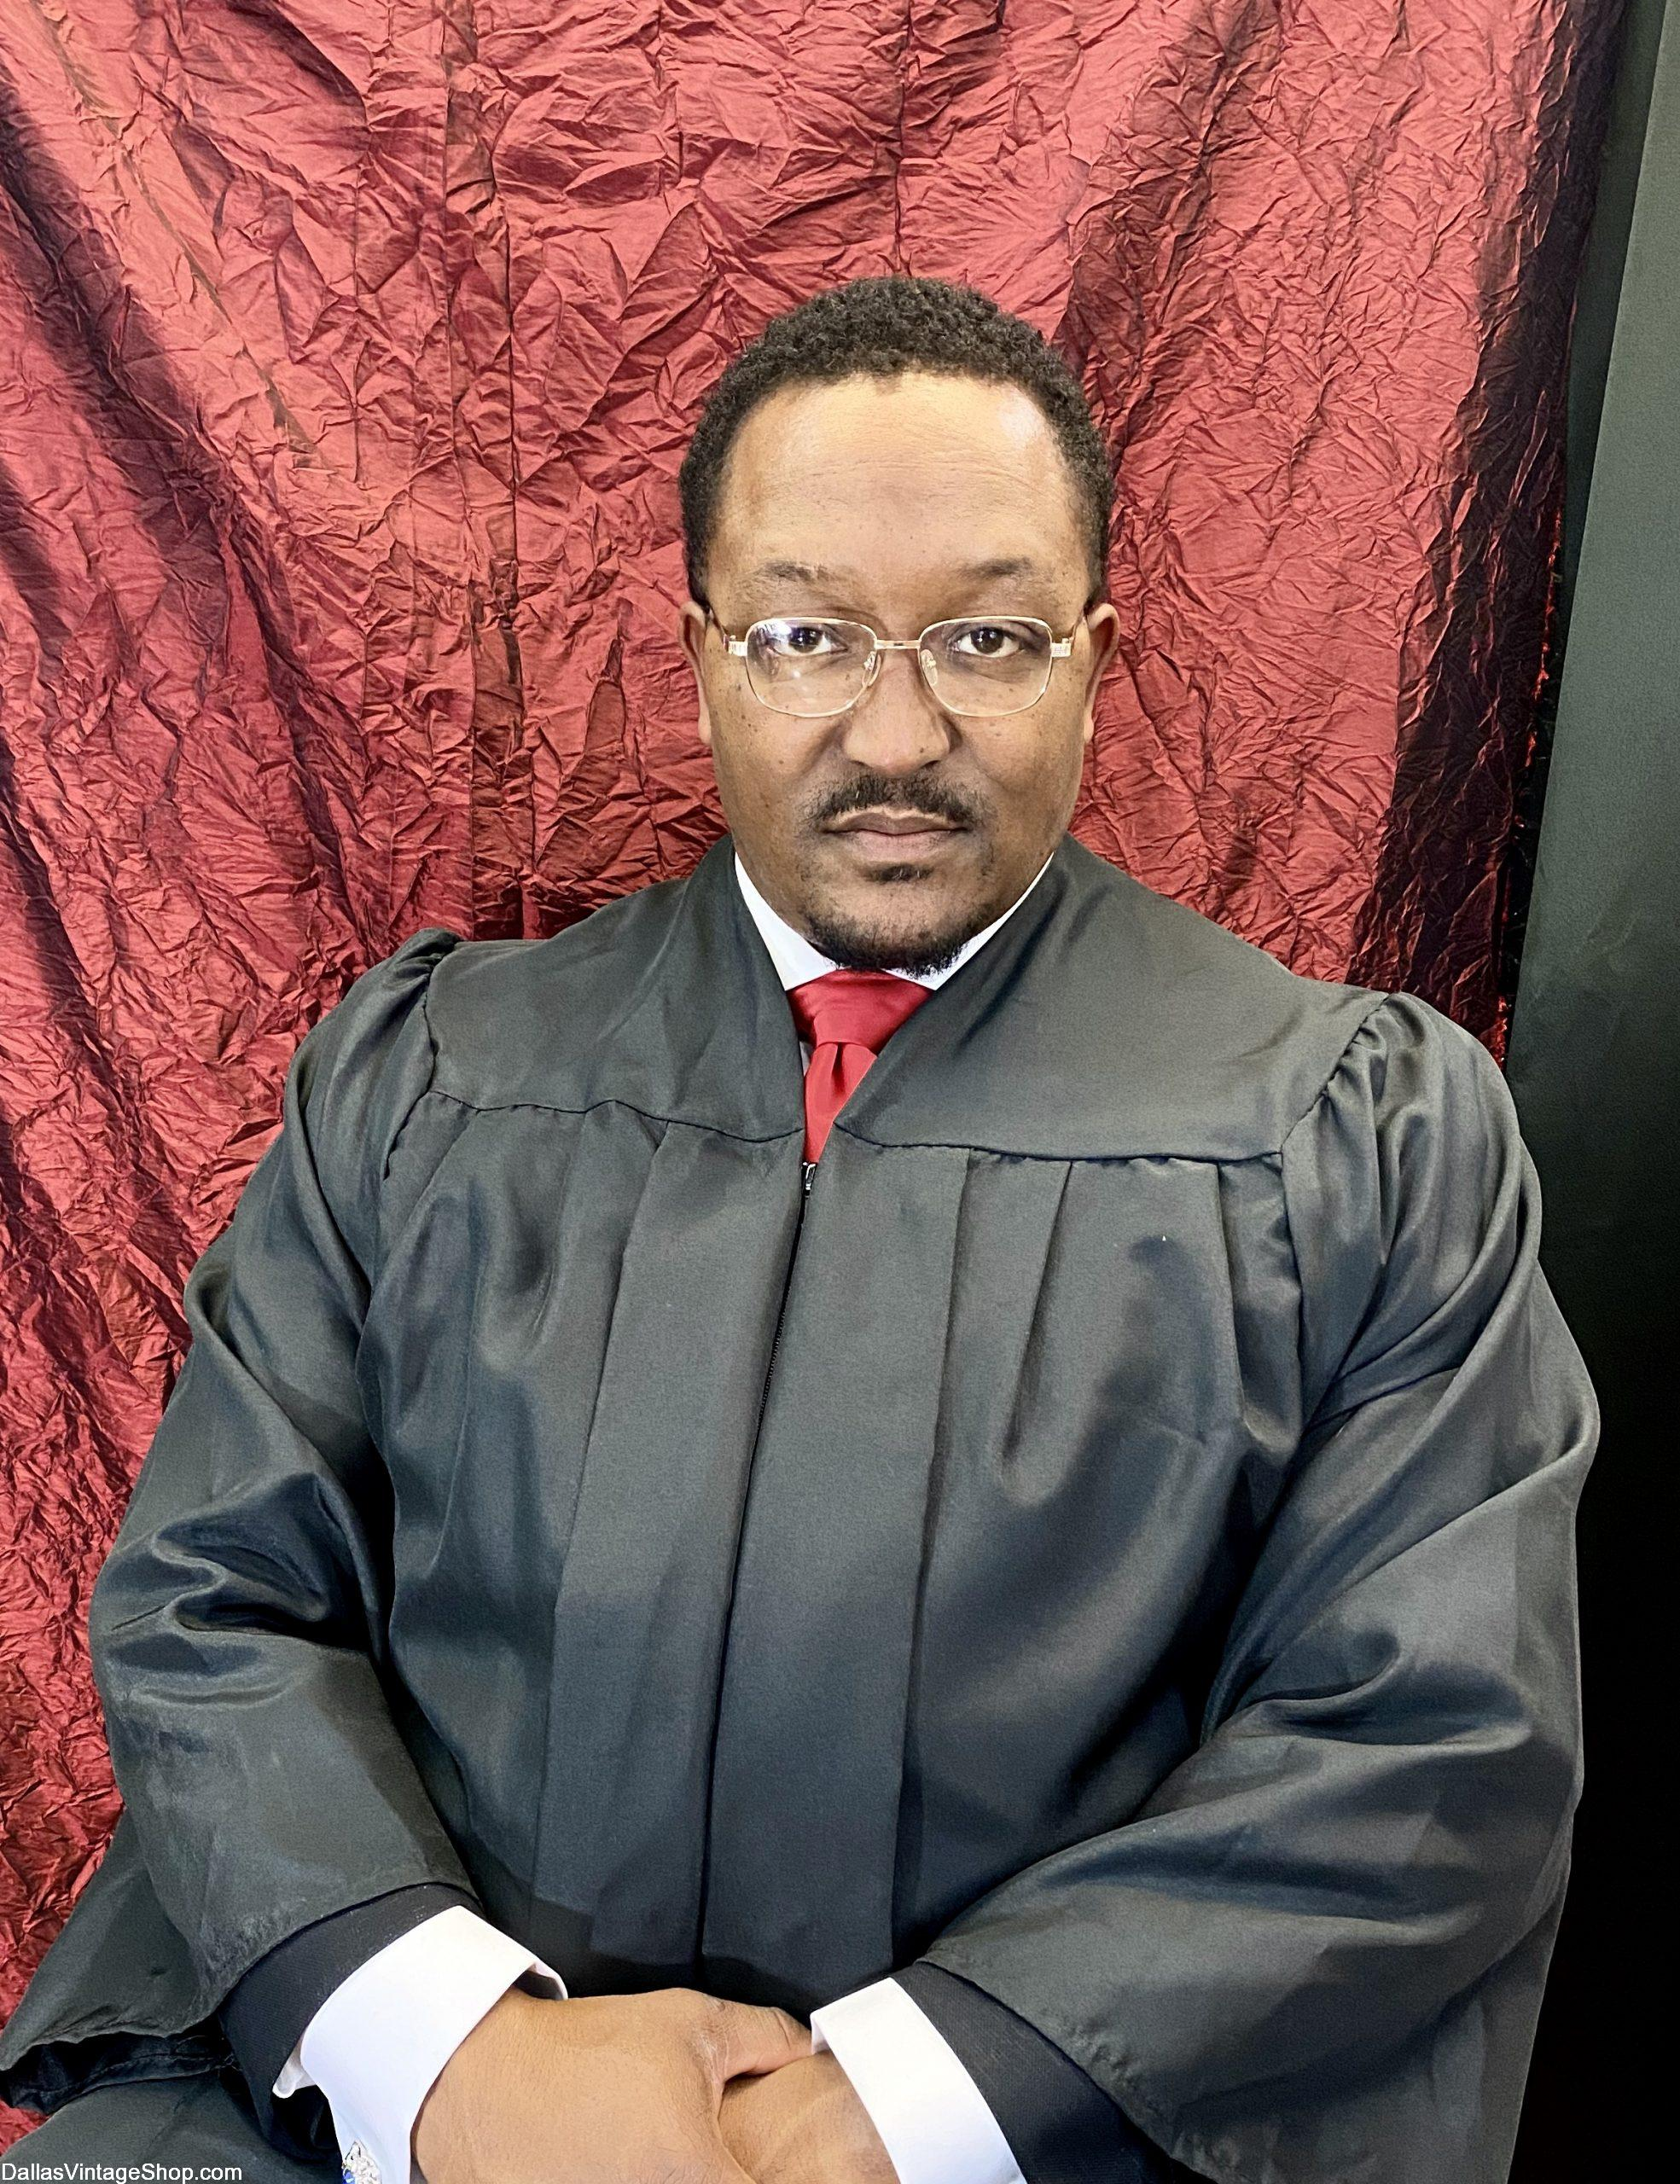 Black History Month Clarence Thomas, Black Historical Americans, Famous Black Americans, Important Black History People, Costumes Period Clothing in stock at Dallas Vintage Shop.